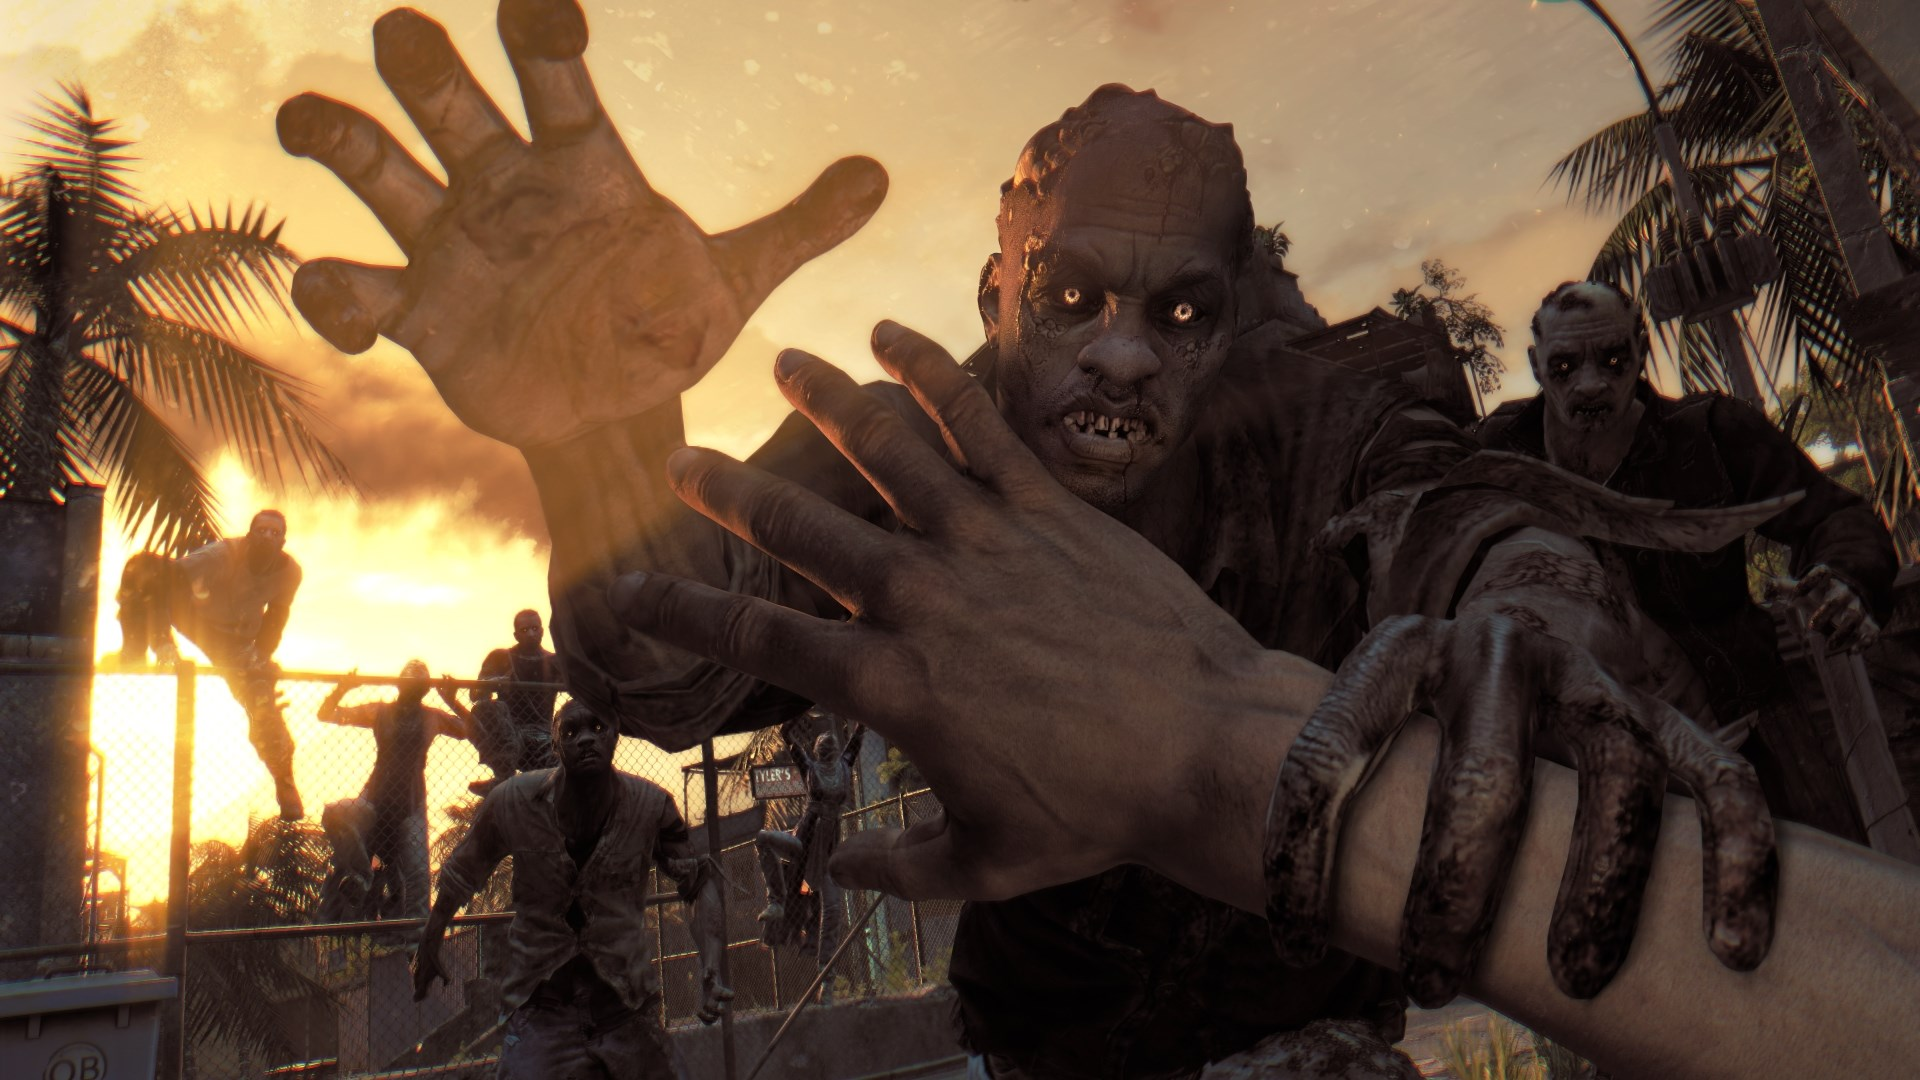 Dying Light Screenshot 01